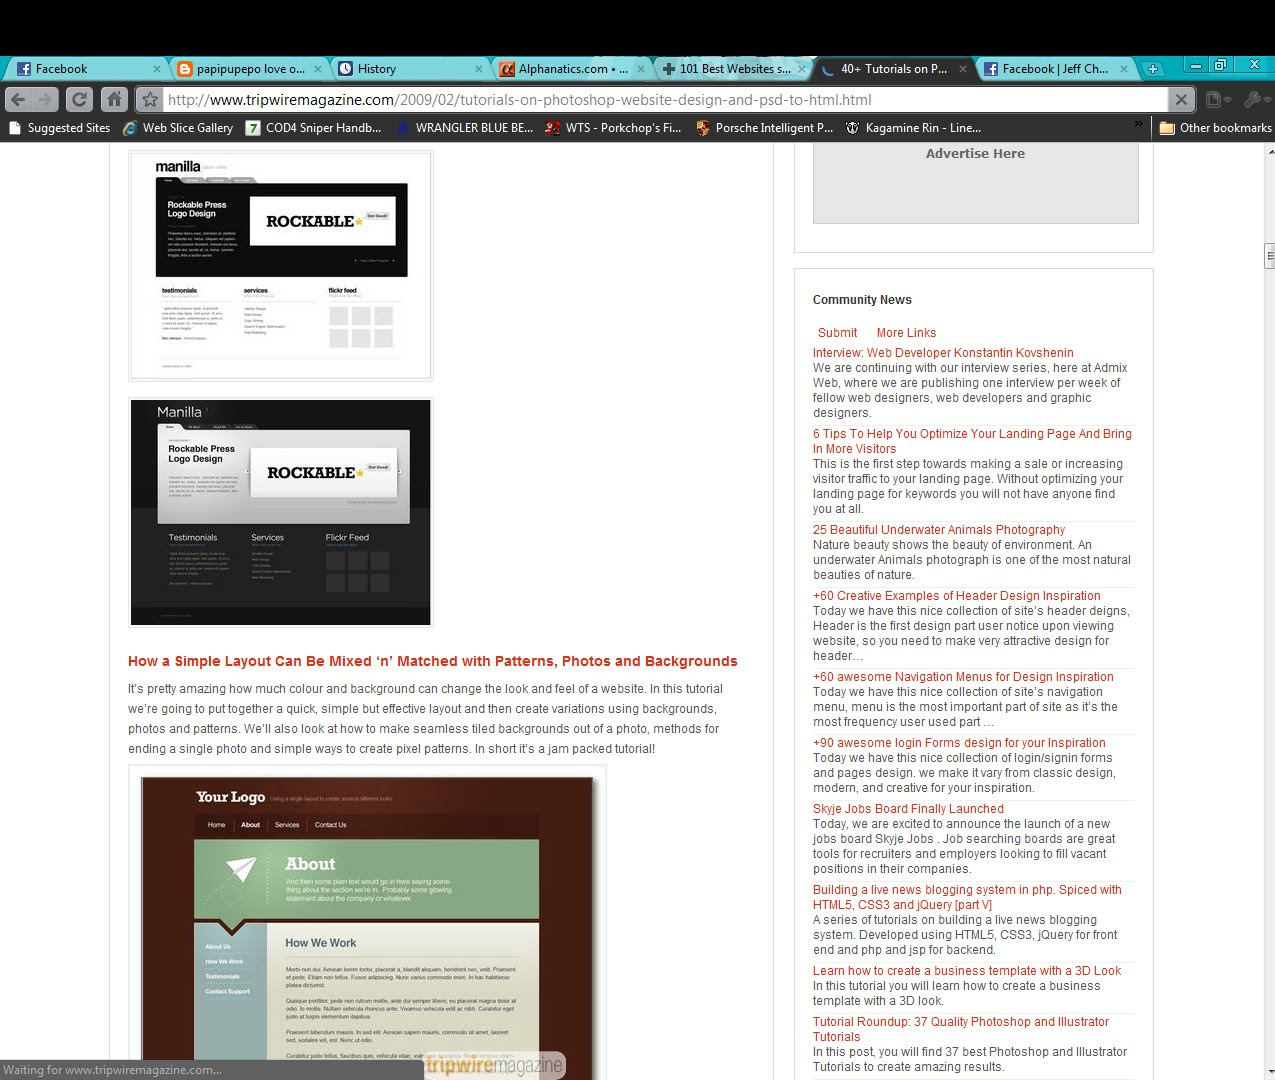 Tutorials To Learn PSD To HTML Conversion